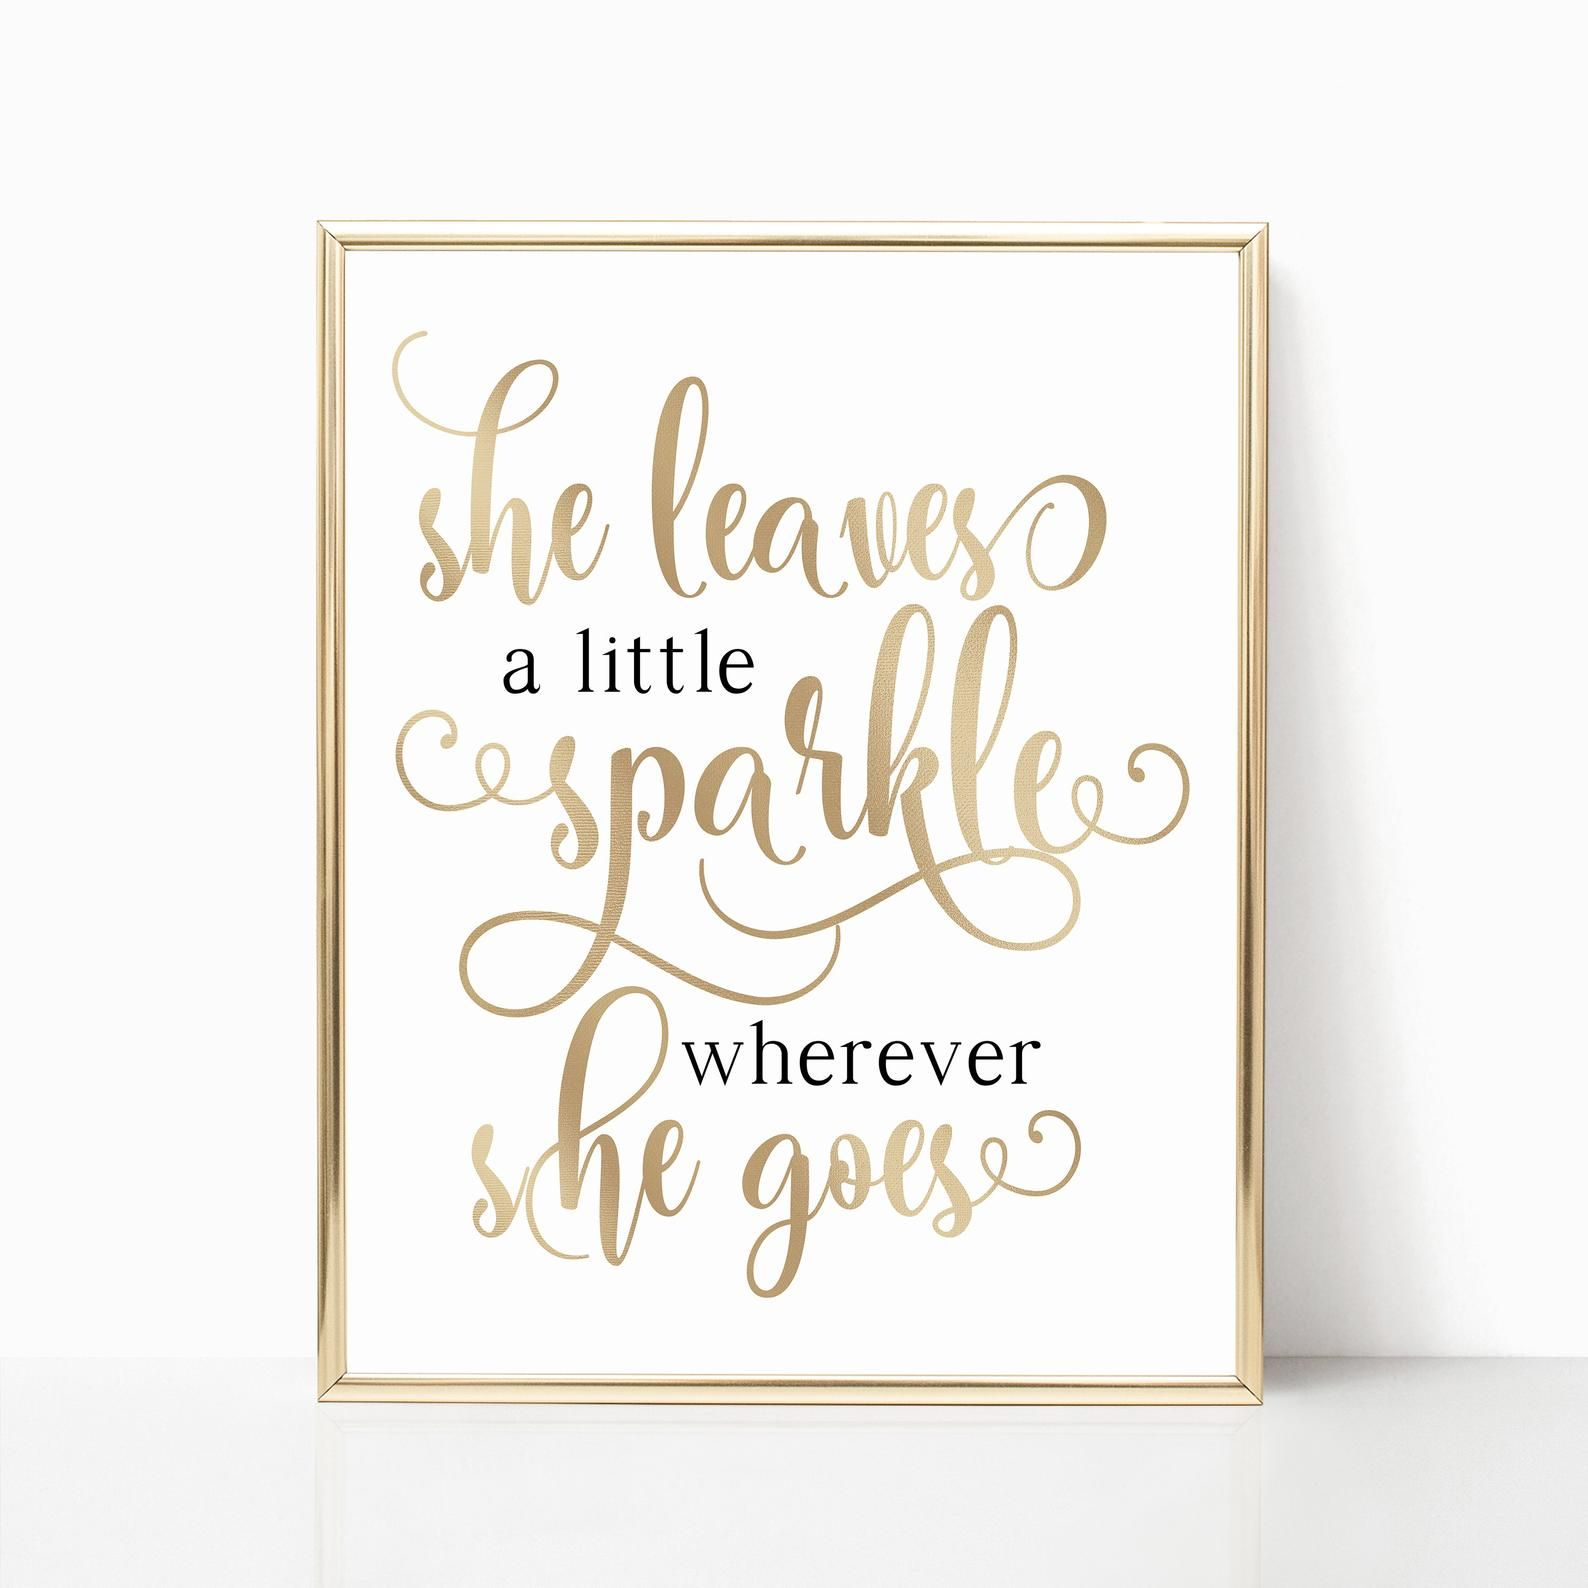 She Leaves A Little Sparkle Wherever She Goes Poster Office Etsy In 2020 Inspirational Printables Printable Inspirational Quotes Printing Websites